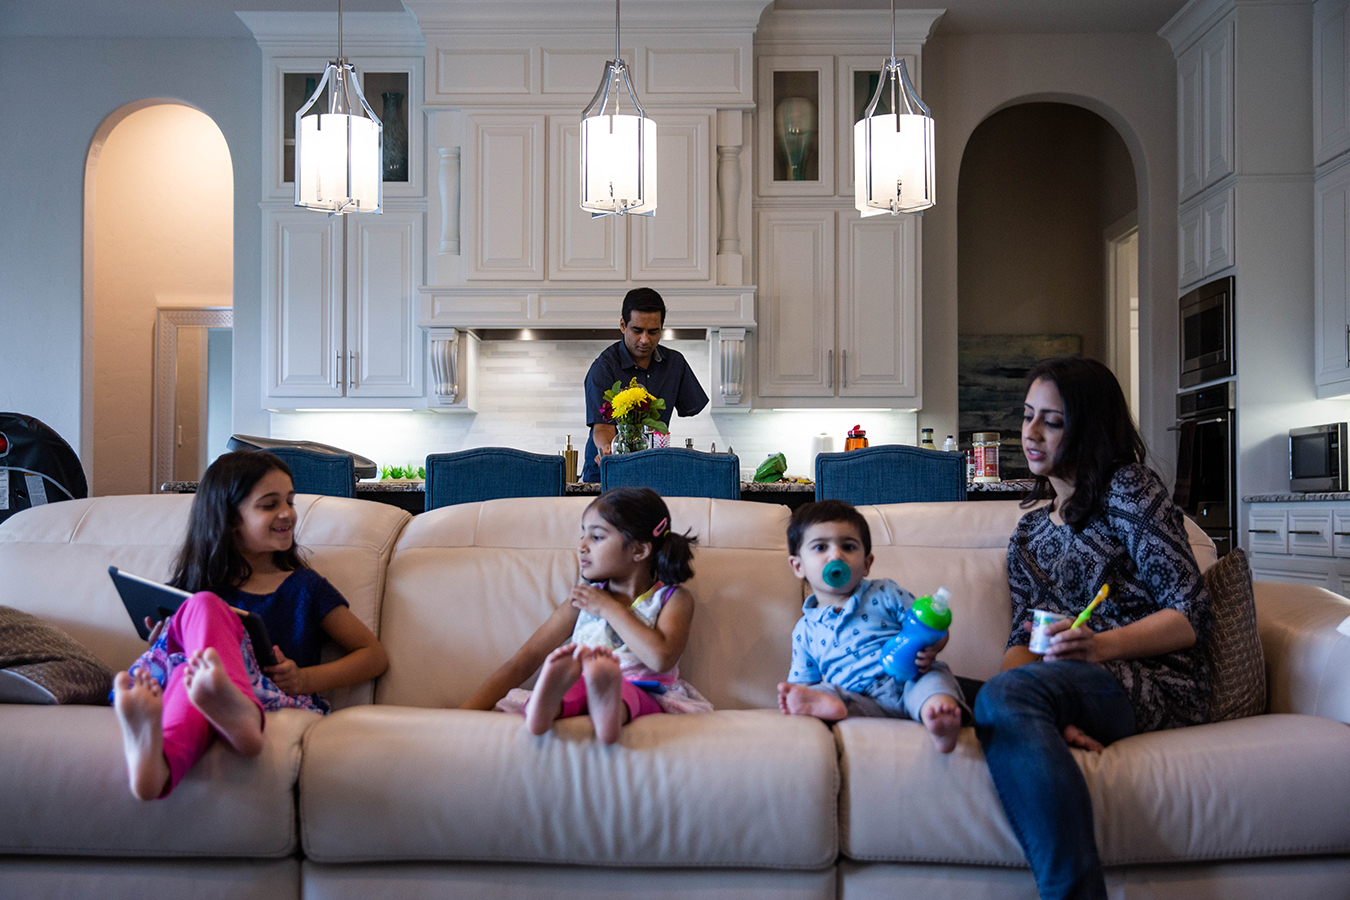 Khan cooks lunch for his wife, Ayesha, and children, Nazneen, 7, Yasmeen, 4, and Rehan, 1, in their home in Southlake, Texas.